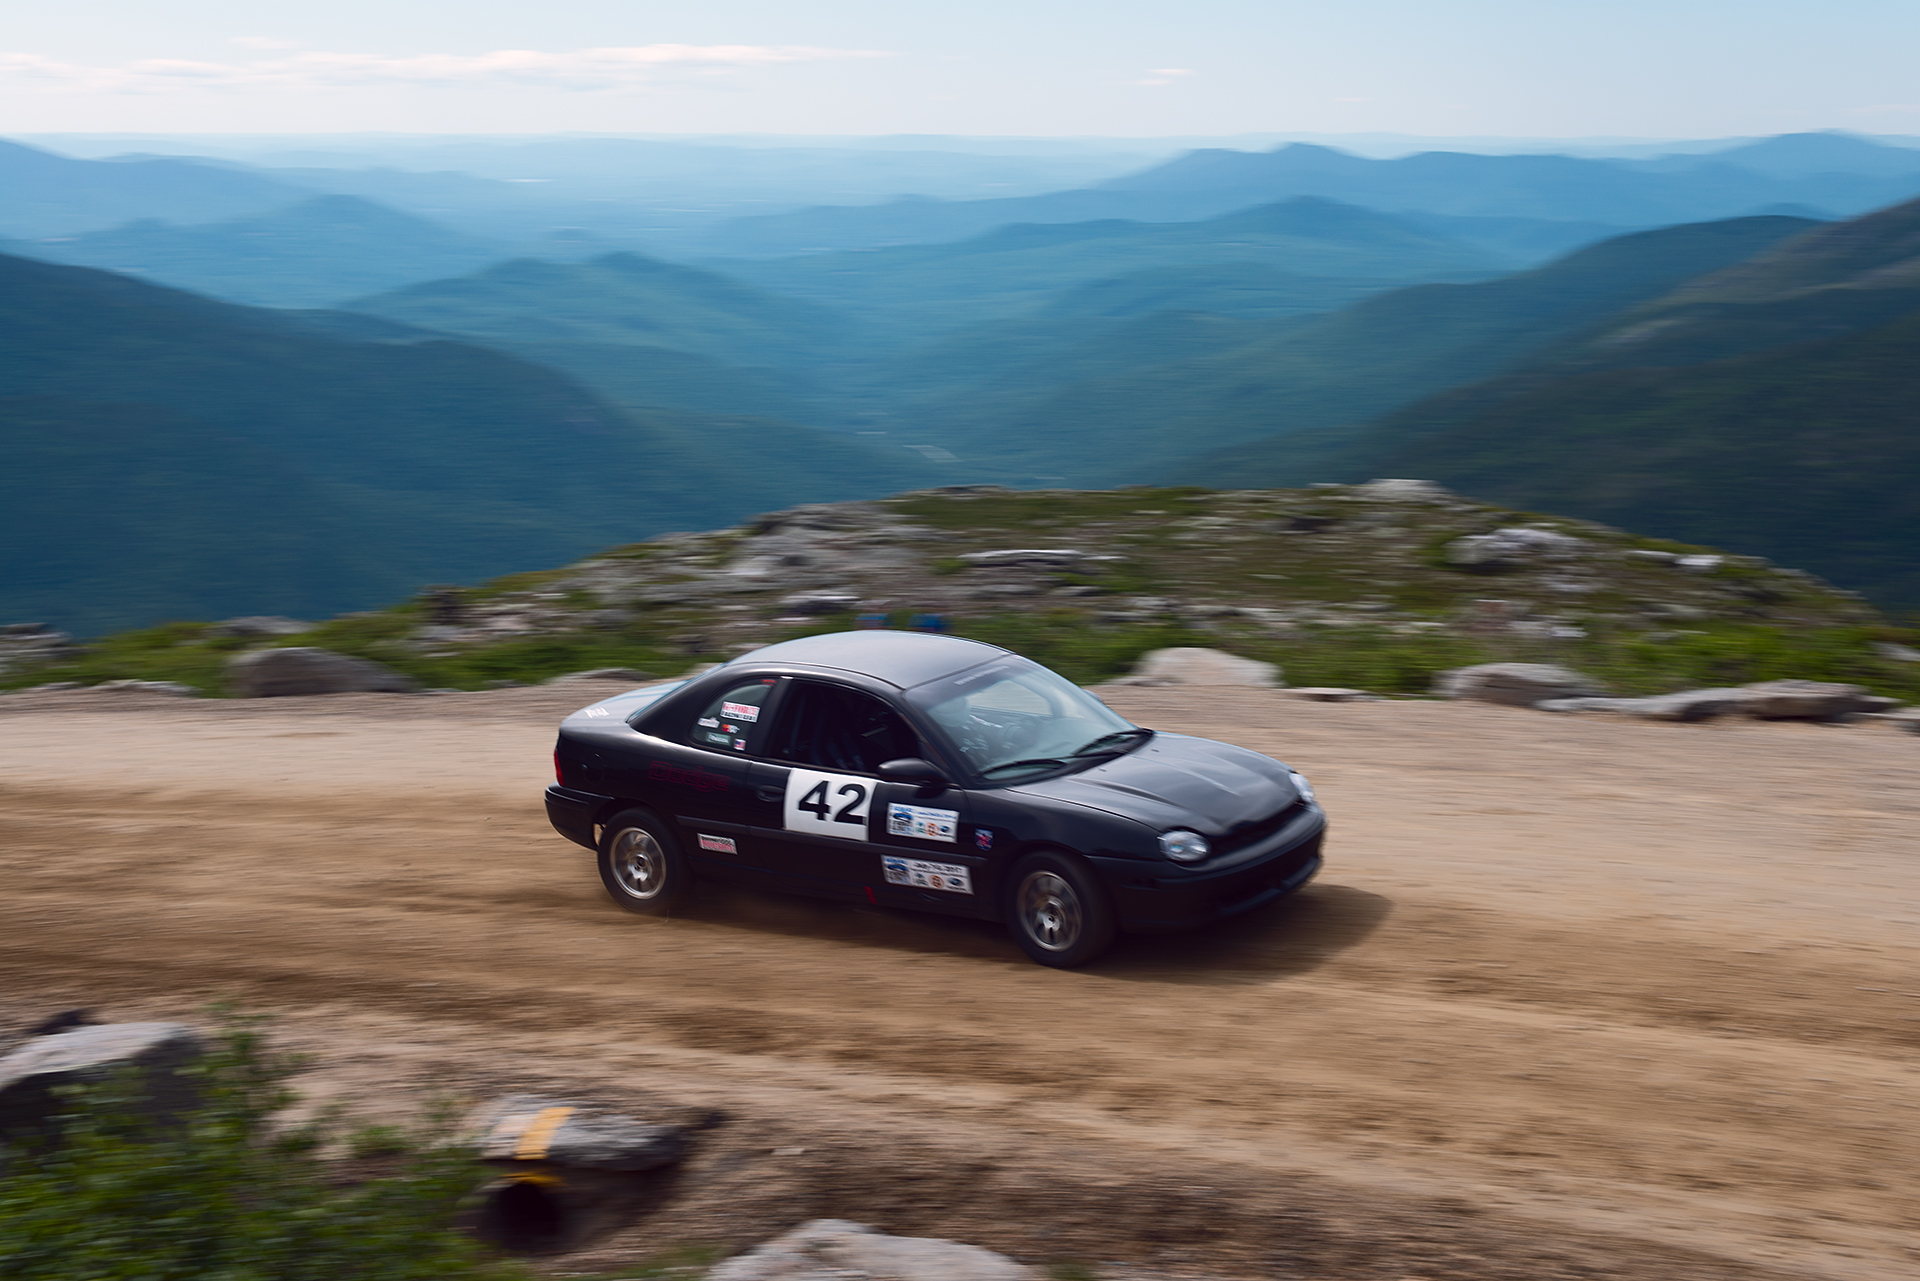 Car 42 at Climb to the Clouds 2017